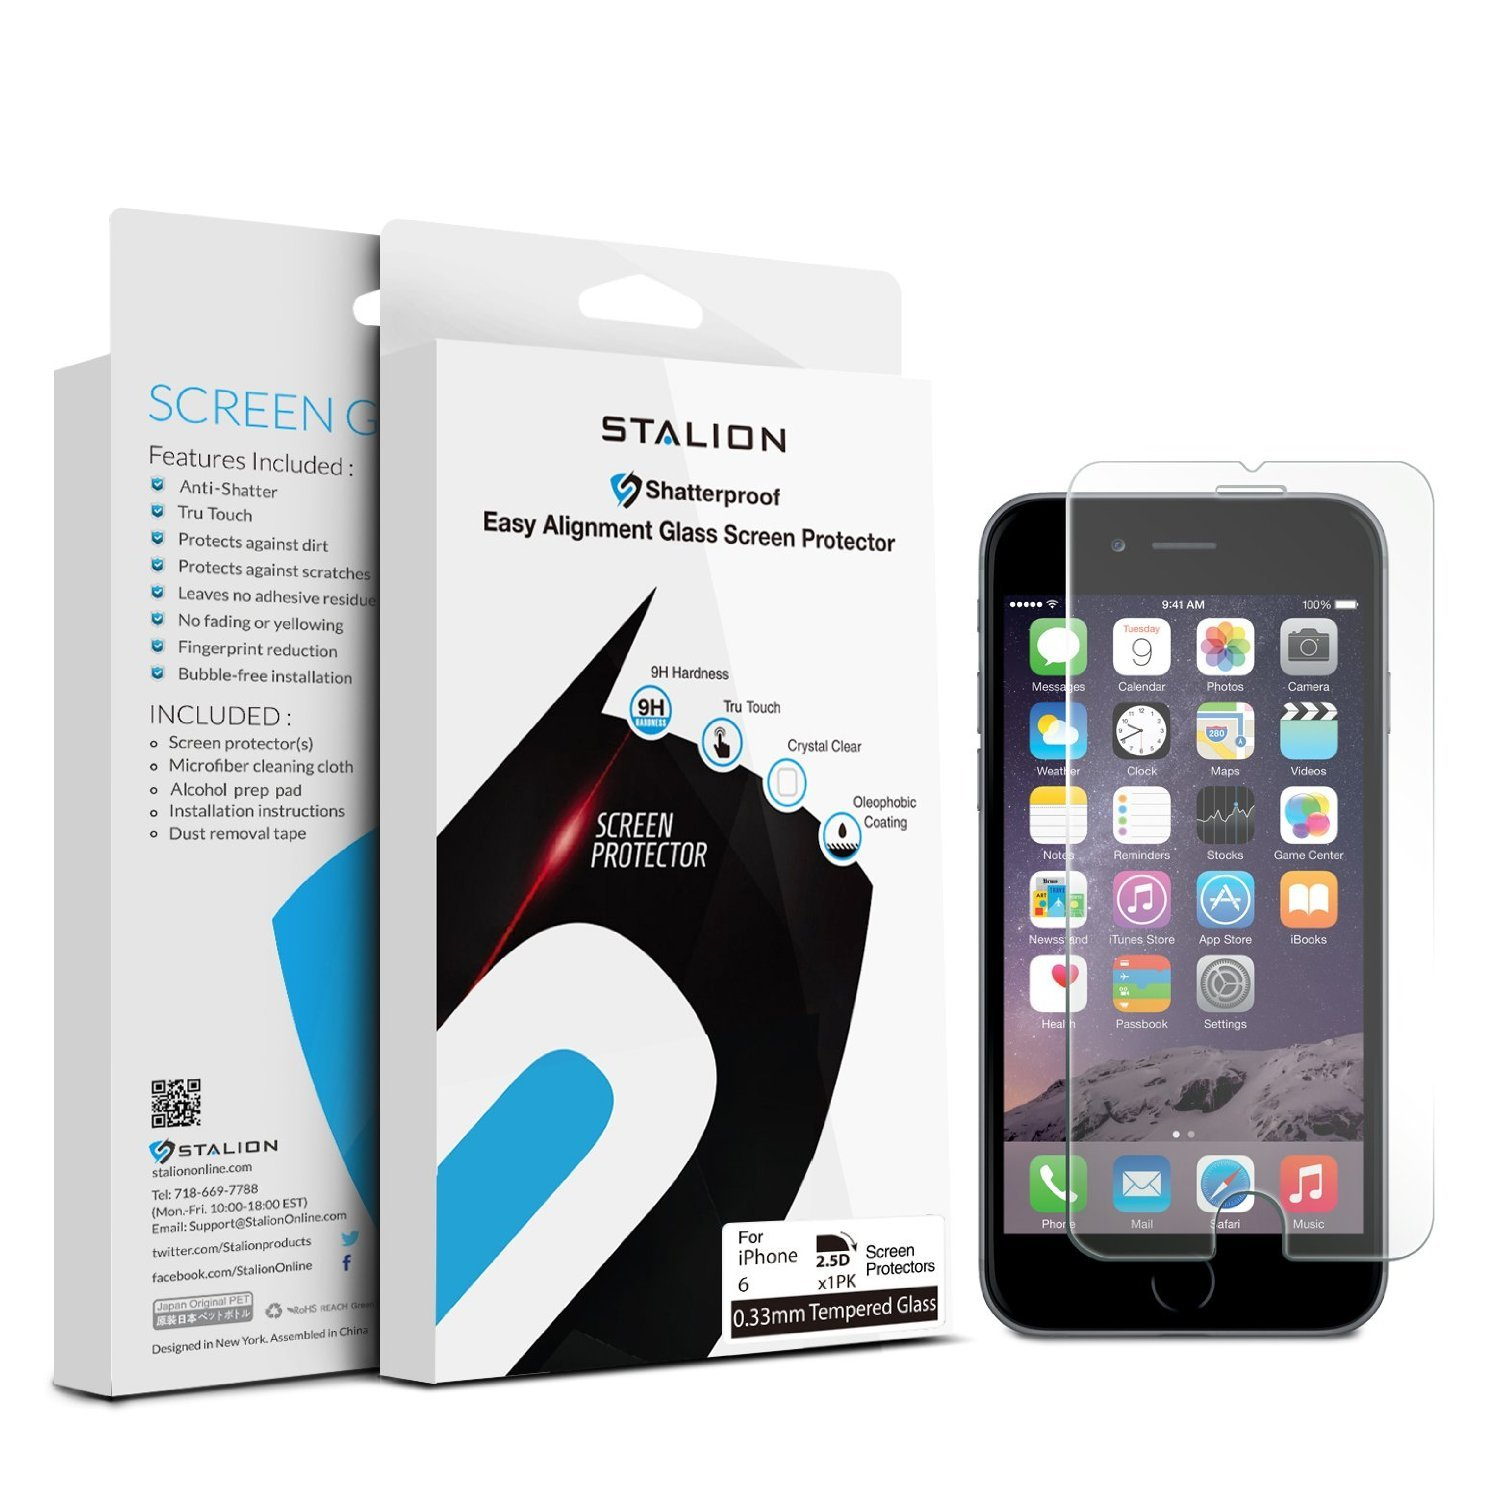 Iphone 6 Screen Protector: Stalion Shield Tempered Liquid Glass Shatterproof .. 10